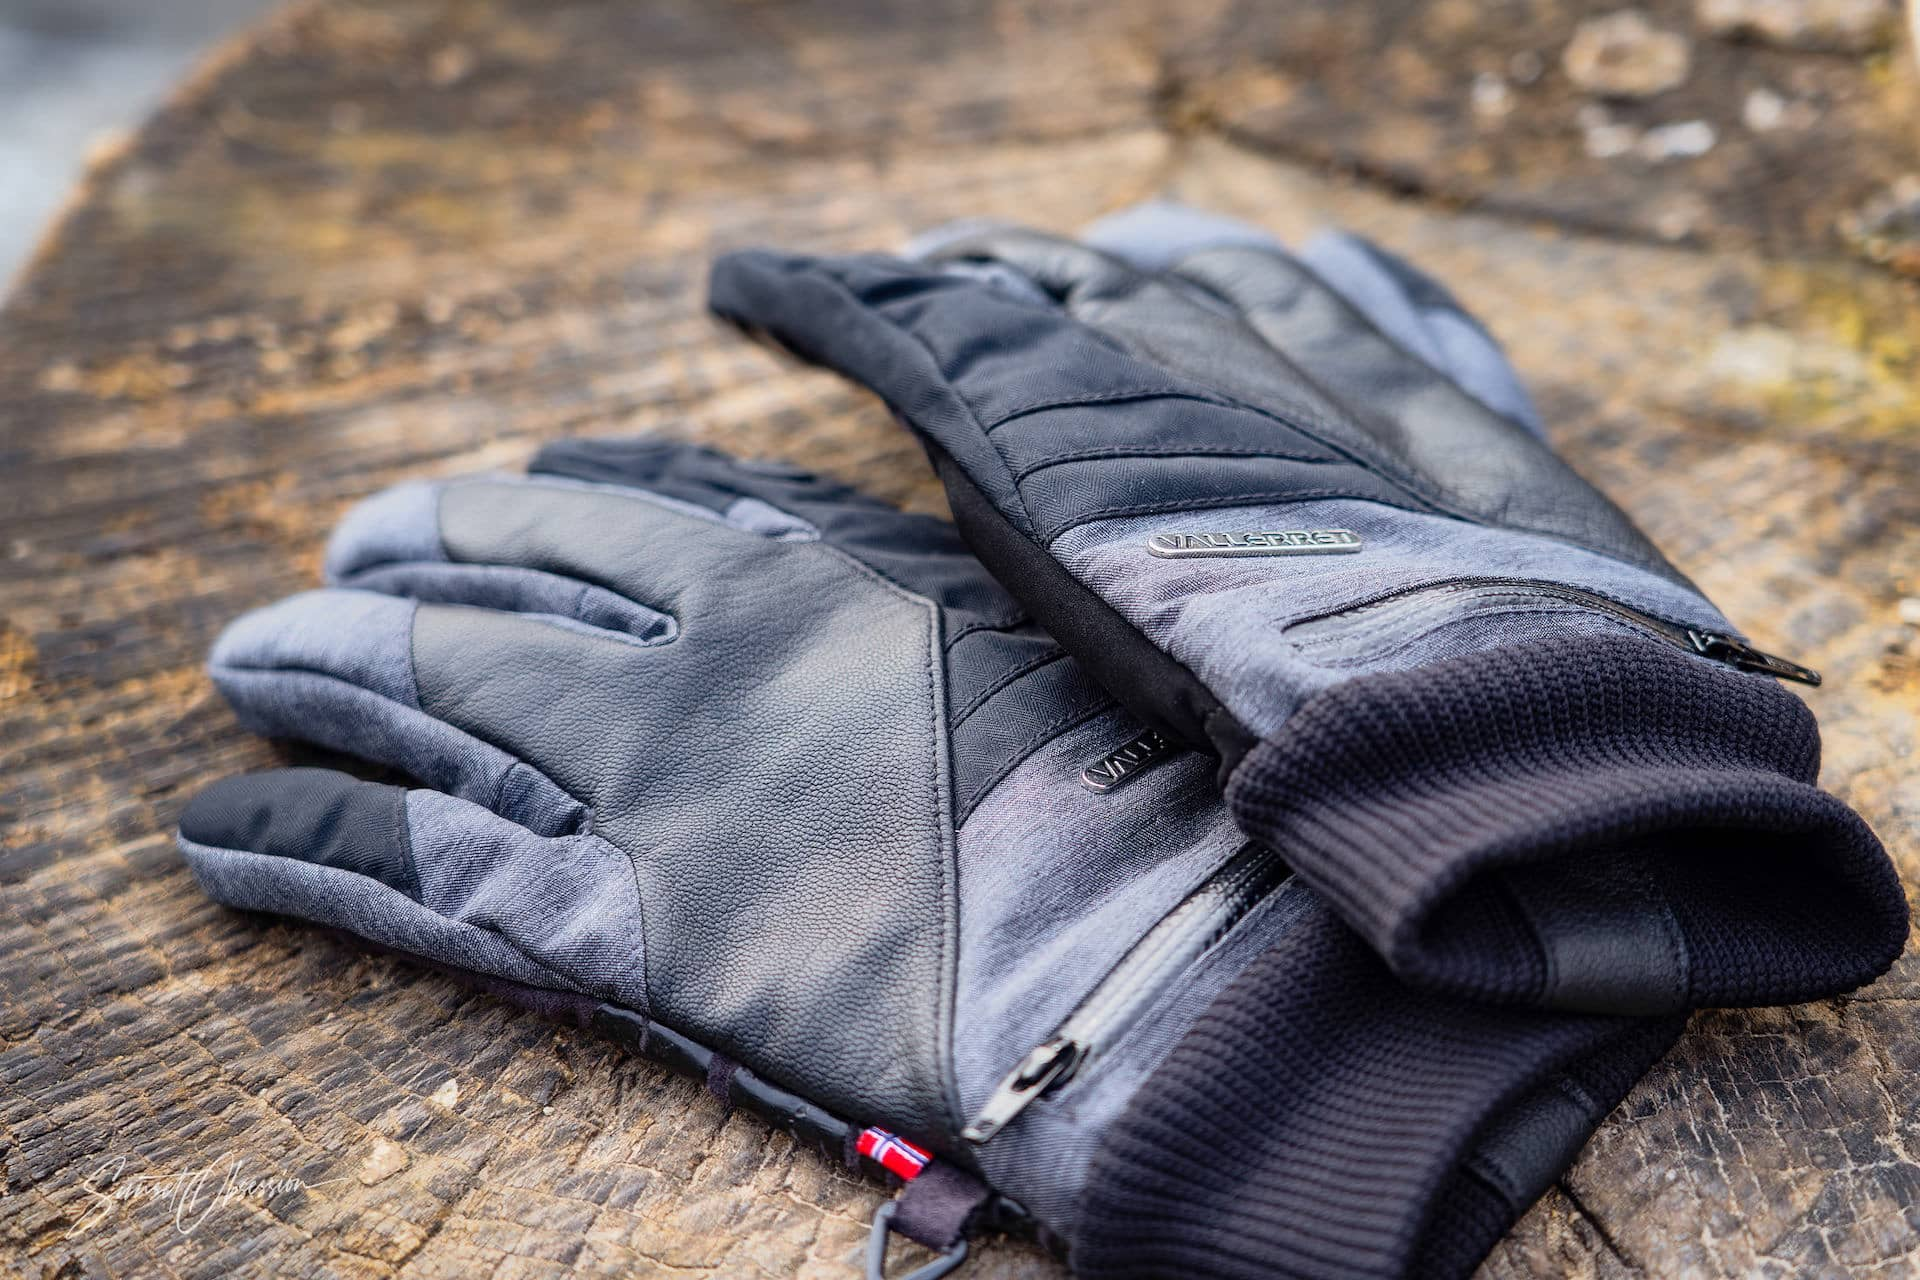 Best Photo Gifts for Photographers - Ideas Photographer Lovers - Photo Grip Gloves